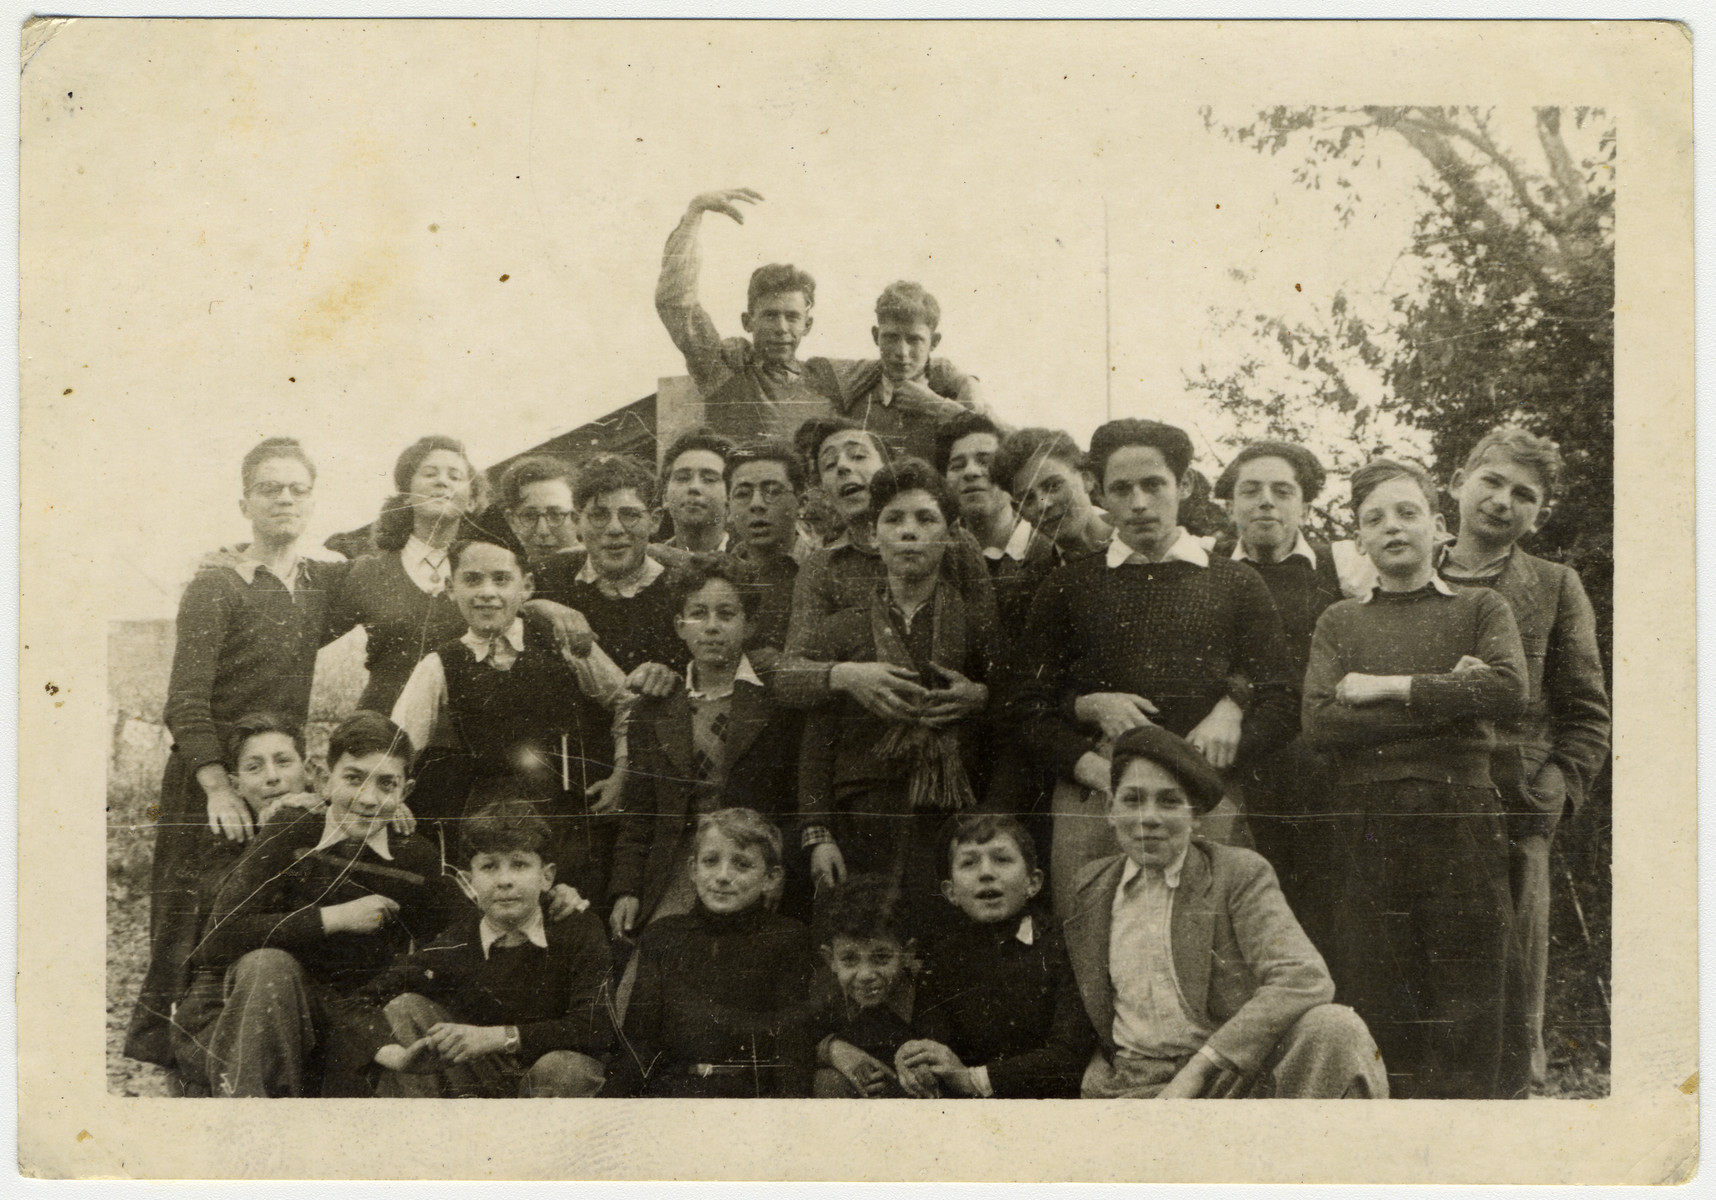 Group portrait of Jewish refugee children in Les Murailles children's home in Geneva.  Among those pictured are Manfred Filipson (standing on the left with glasses), Theo Brenig (middle), Alex Alter (next to him), David Bergman, Otto Weiner (right), Ludwig Meier (back left), Simon Nudel (standing fourth from right), amd Tuvia Hirsch (third from right).